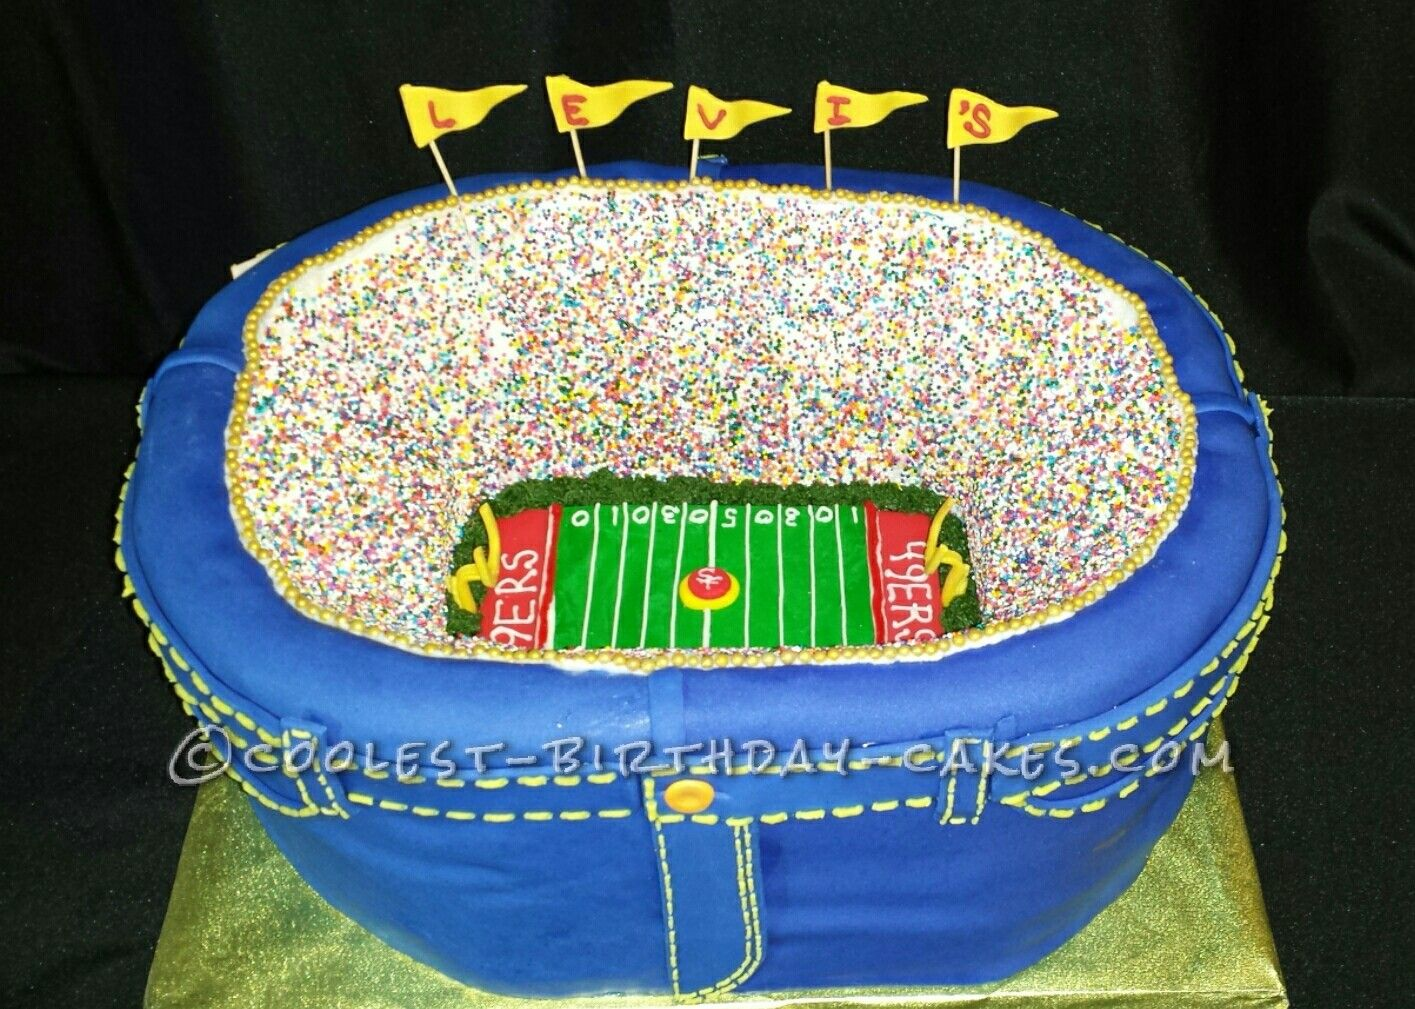 Admirable Coolest Football Stadium Cake Cool Birthday Cakes Cake Designs Funny Birthday Cards Online Overcheapnameinfo